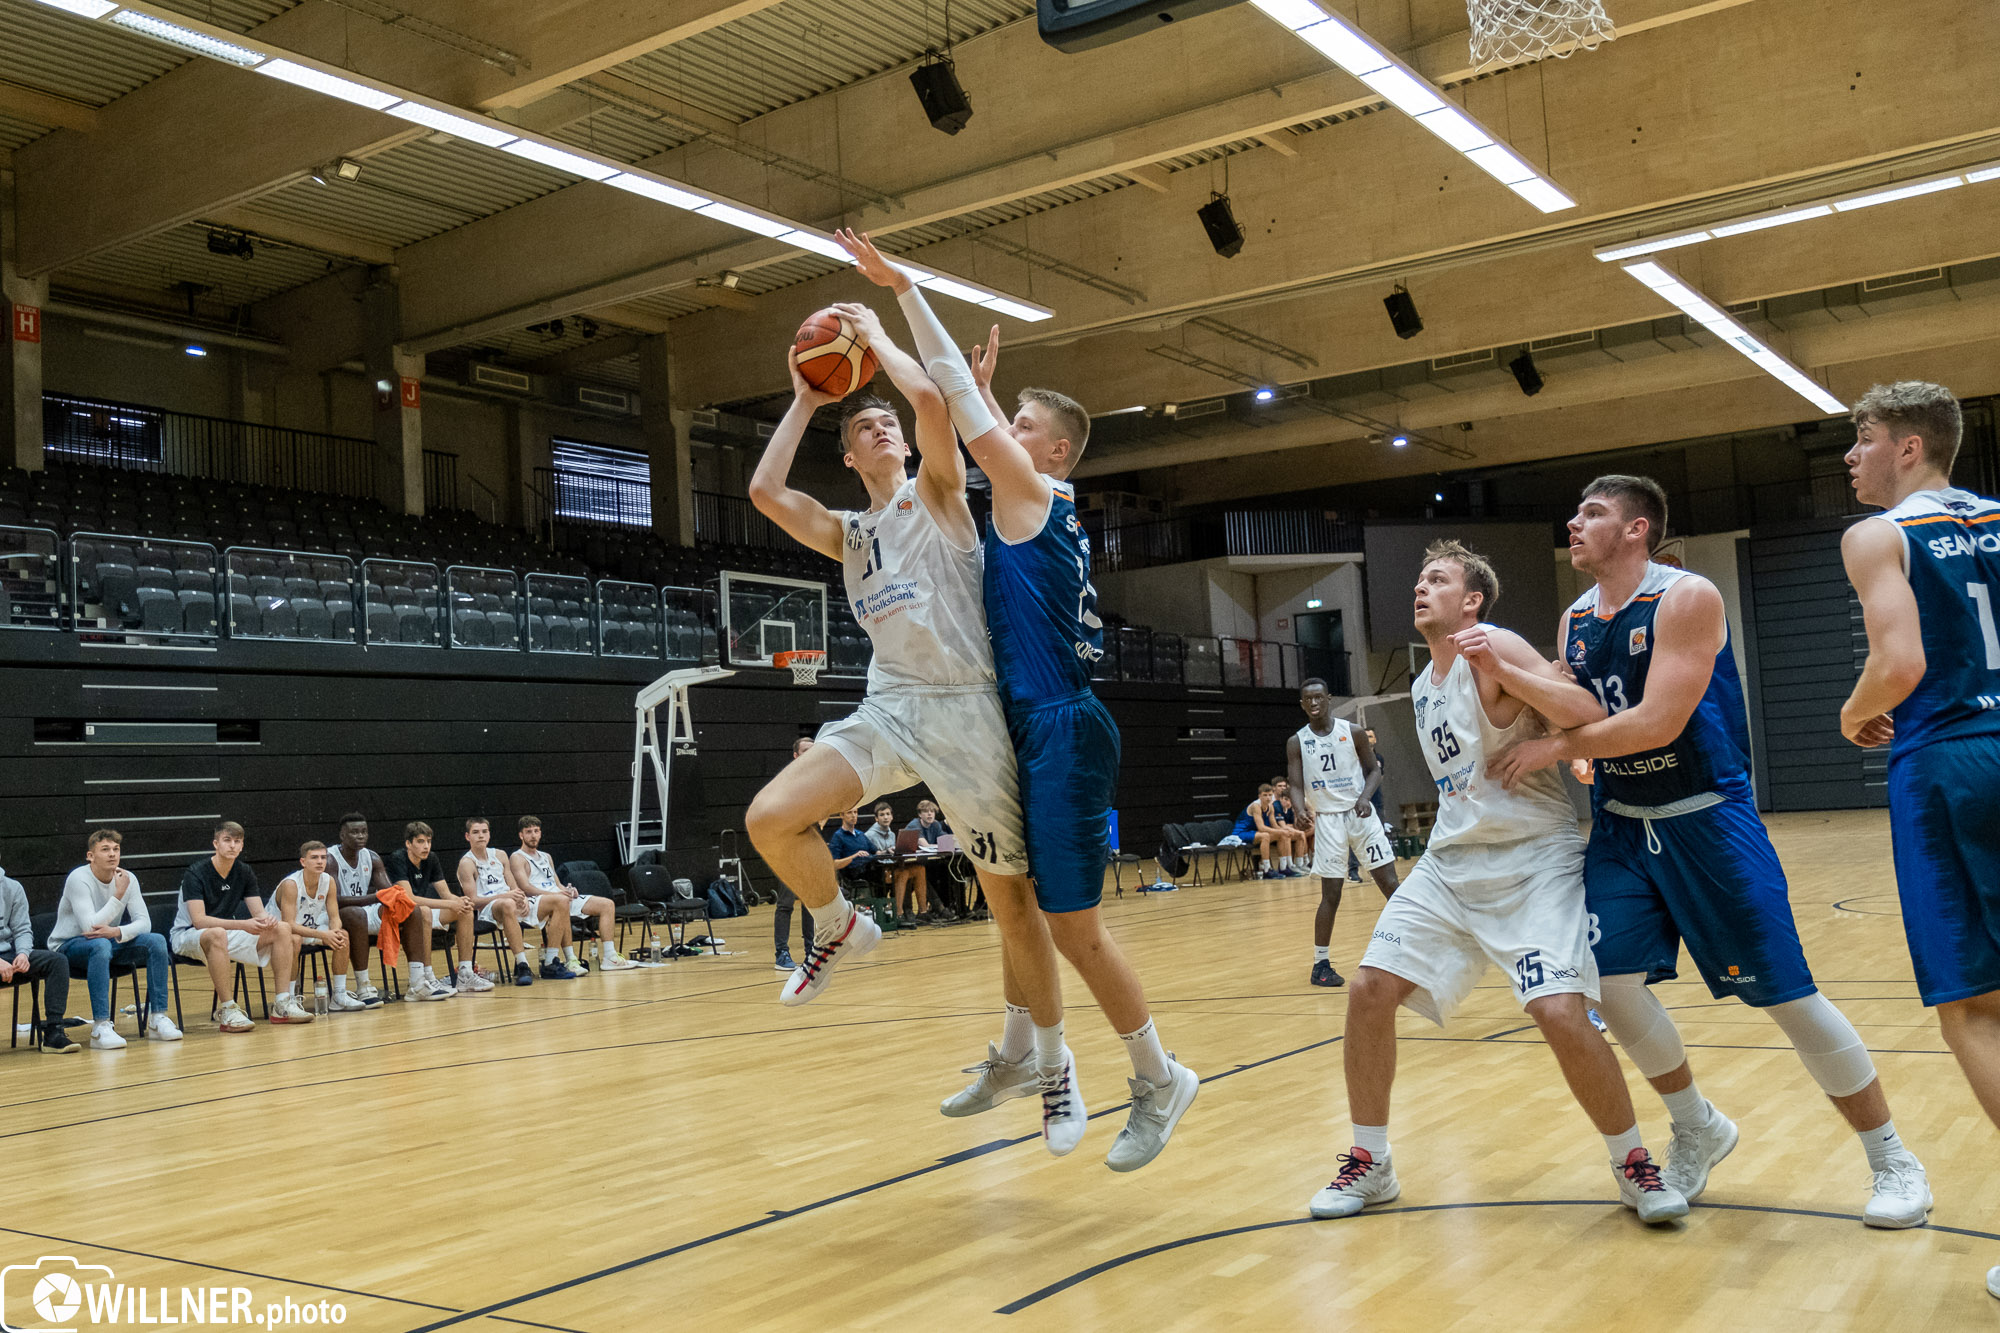 Foto-1-19.10.2019_-Spieltag-2-NBBL-Hamburg-Towers-gegen-Rostock-Seawolves-Youngsters